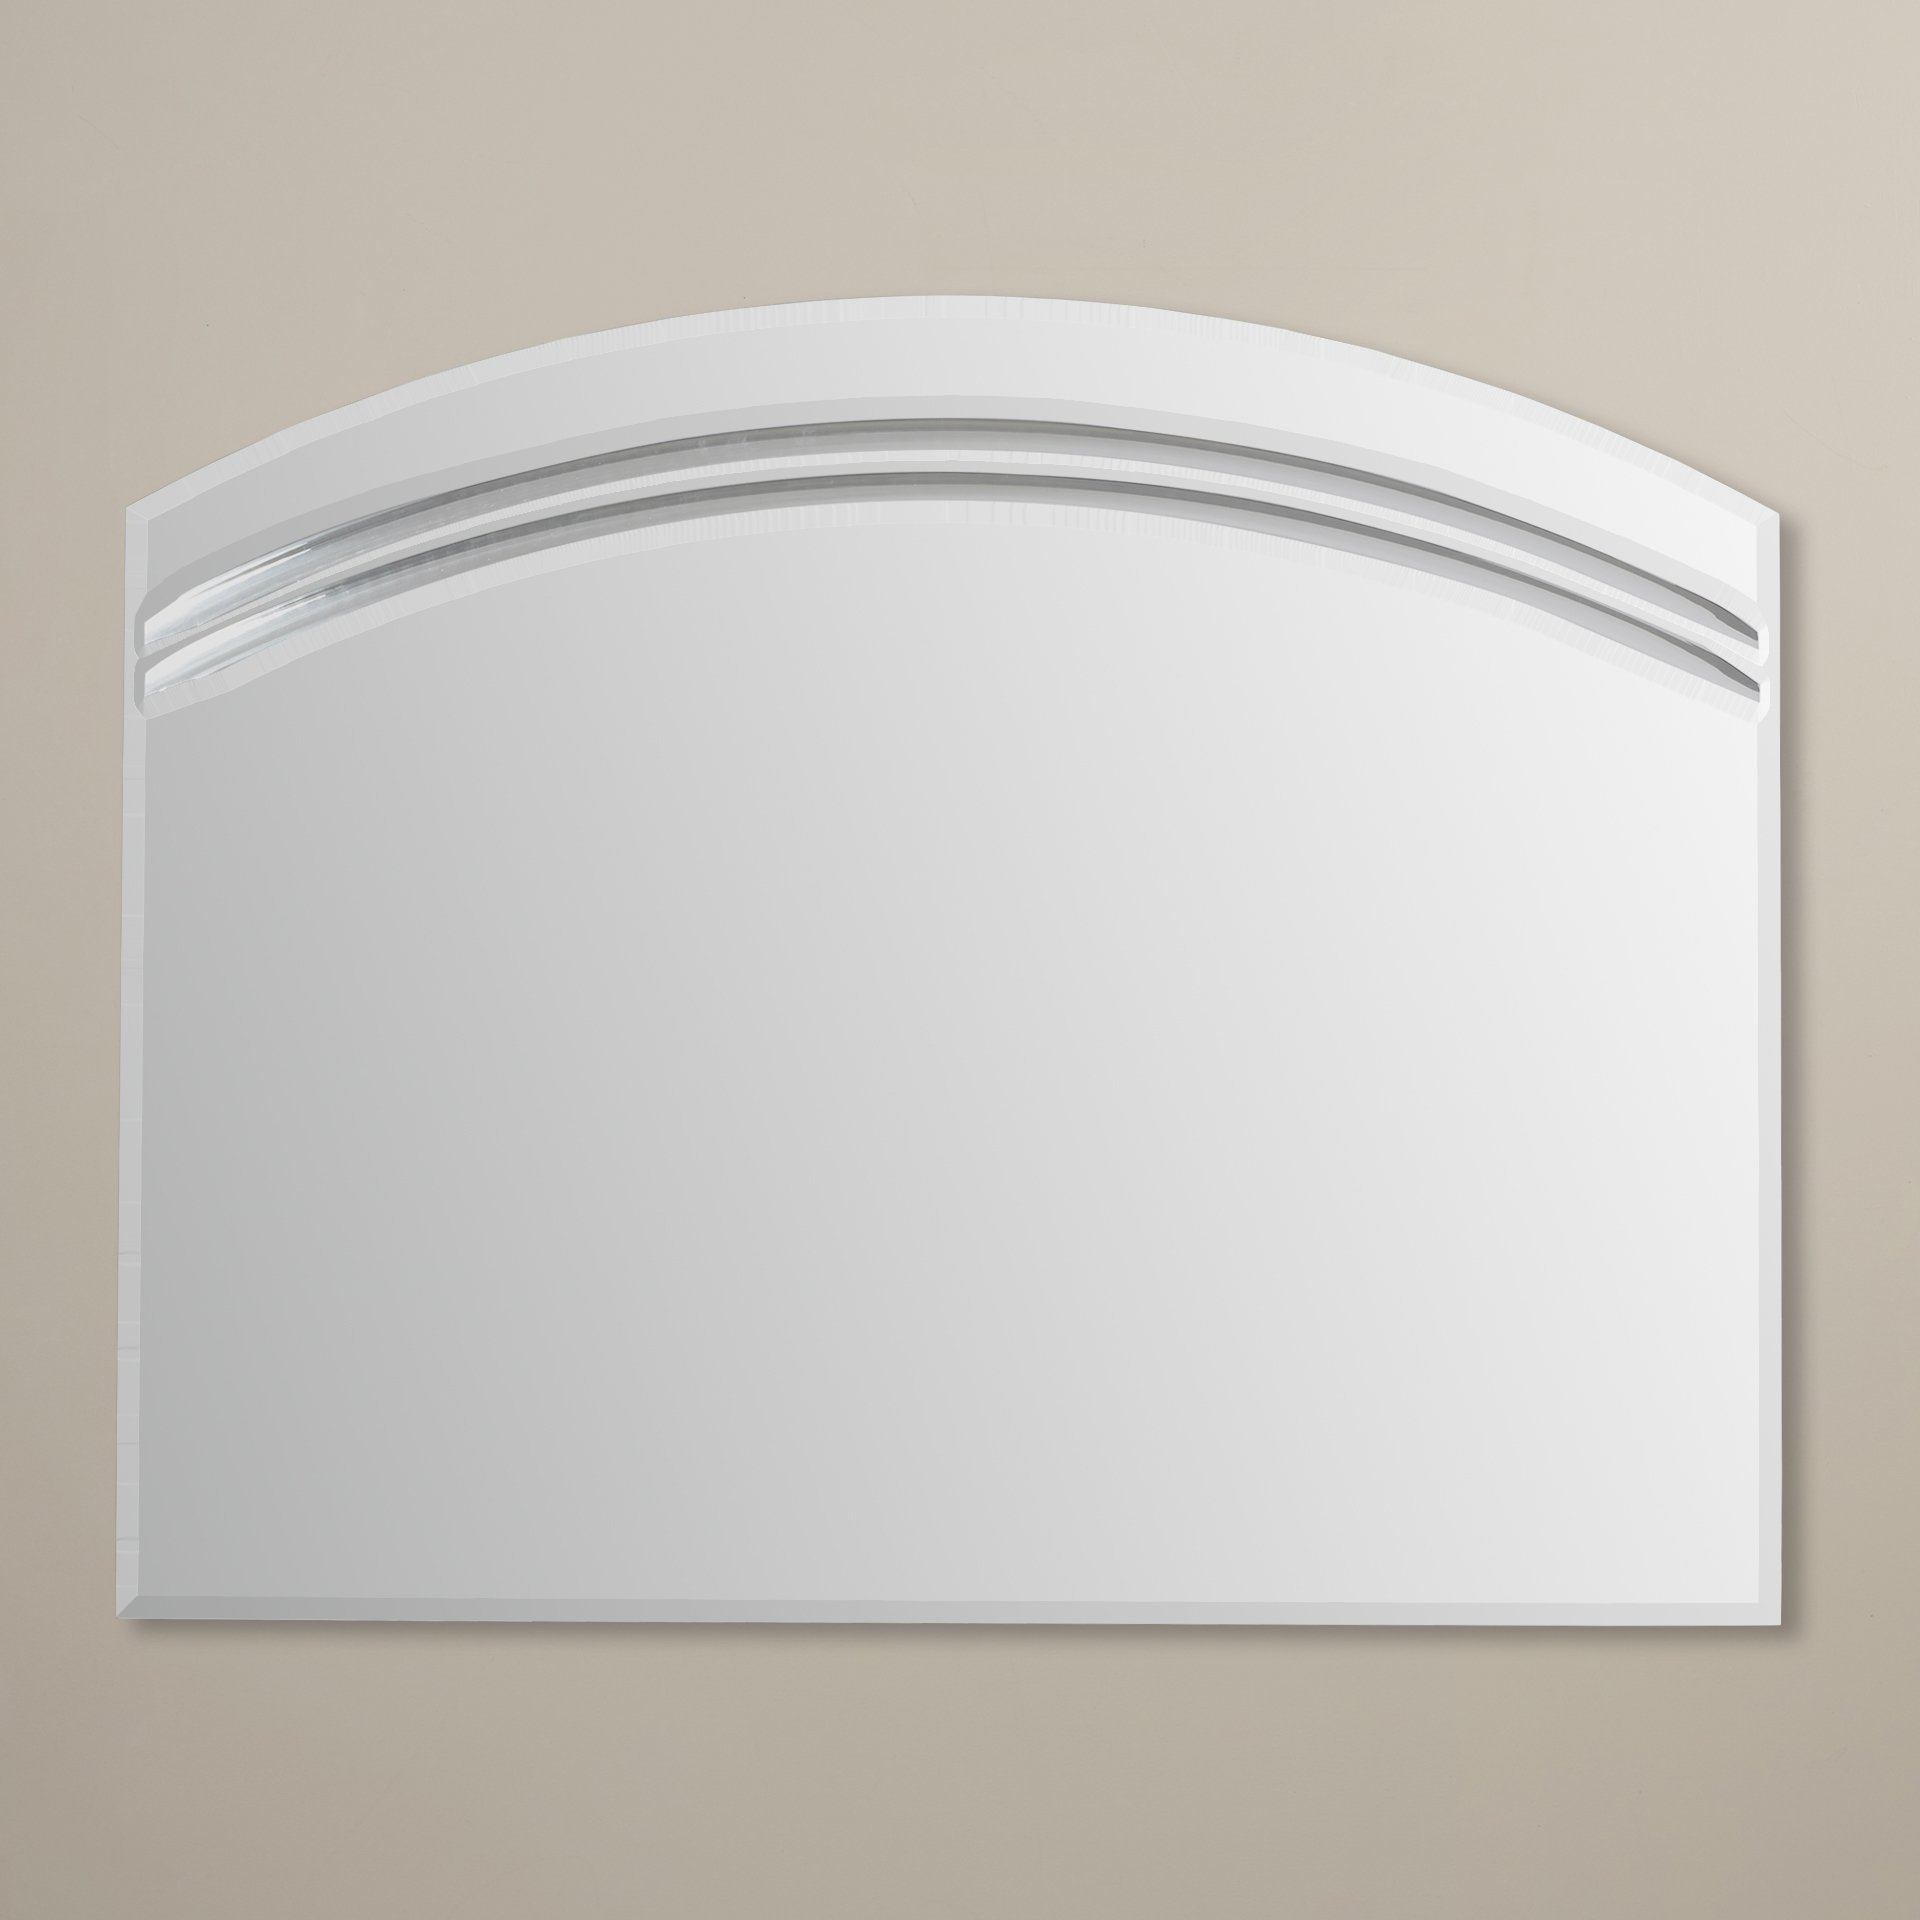 Wade Logan Large Frameless Wall Mirror Reviews Wayfair In Large Frameless Mirrors (Image 14 of 15)